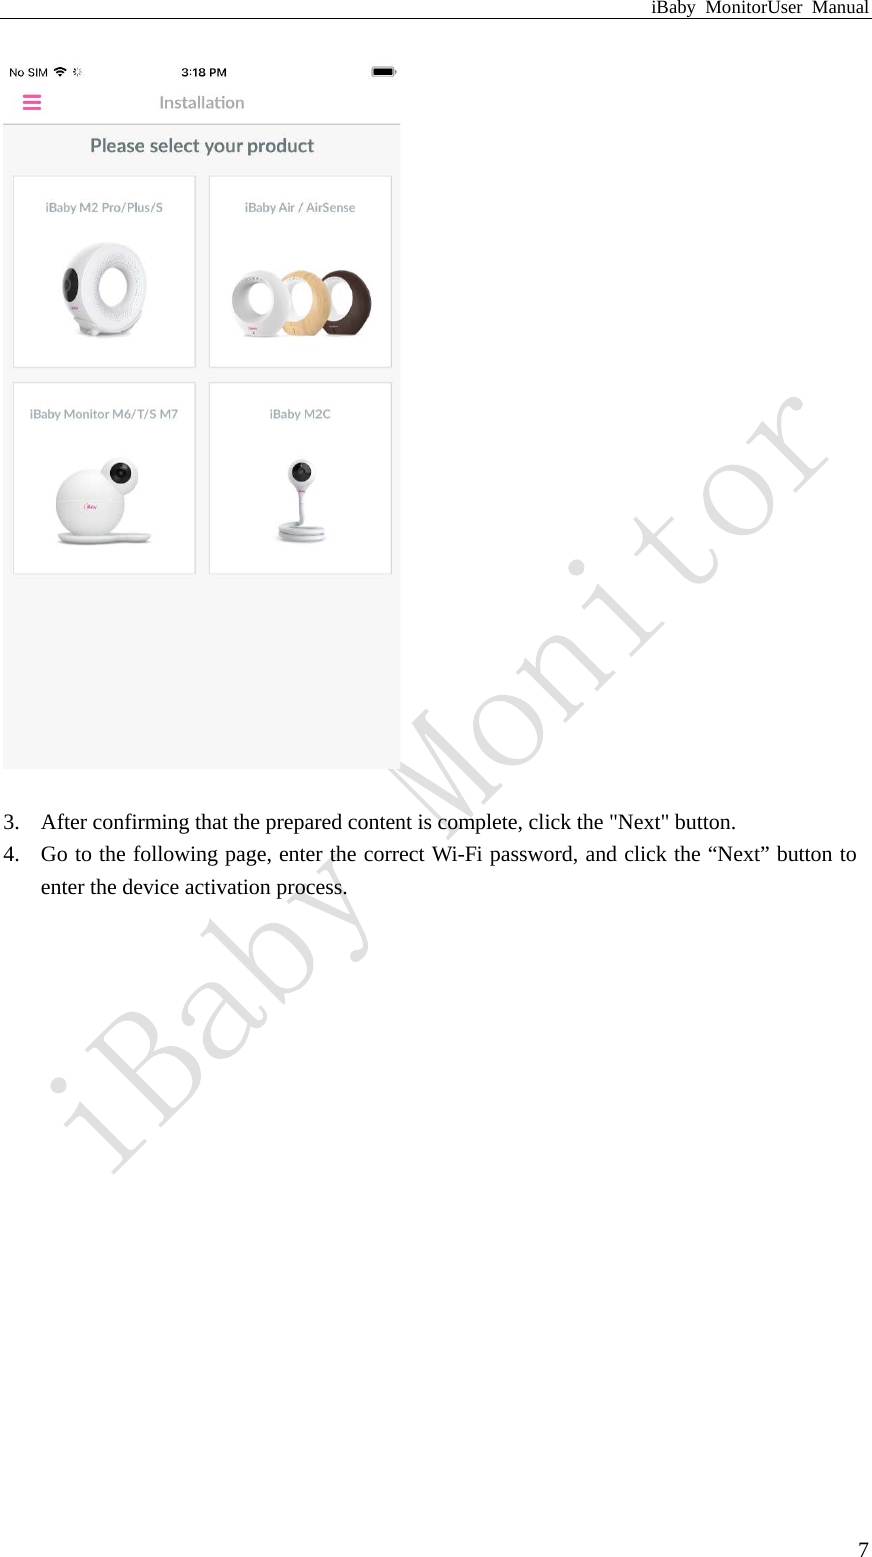 """iBaby MonitorUser Manual  7   3. After confirming that the prepared content is complete, click the """"Next"""" button. 4. Go to the following page, enter the correct Wi-Fi password, and click the """"Next"""" button to enter the device activation process."""